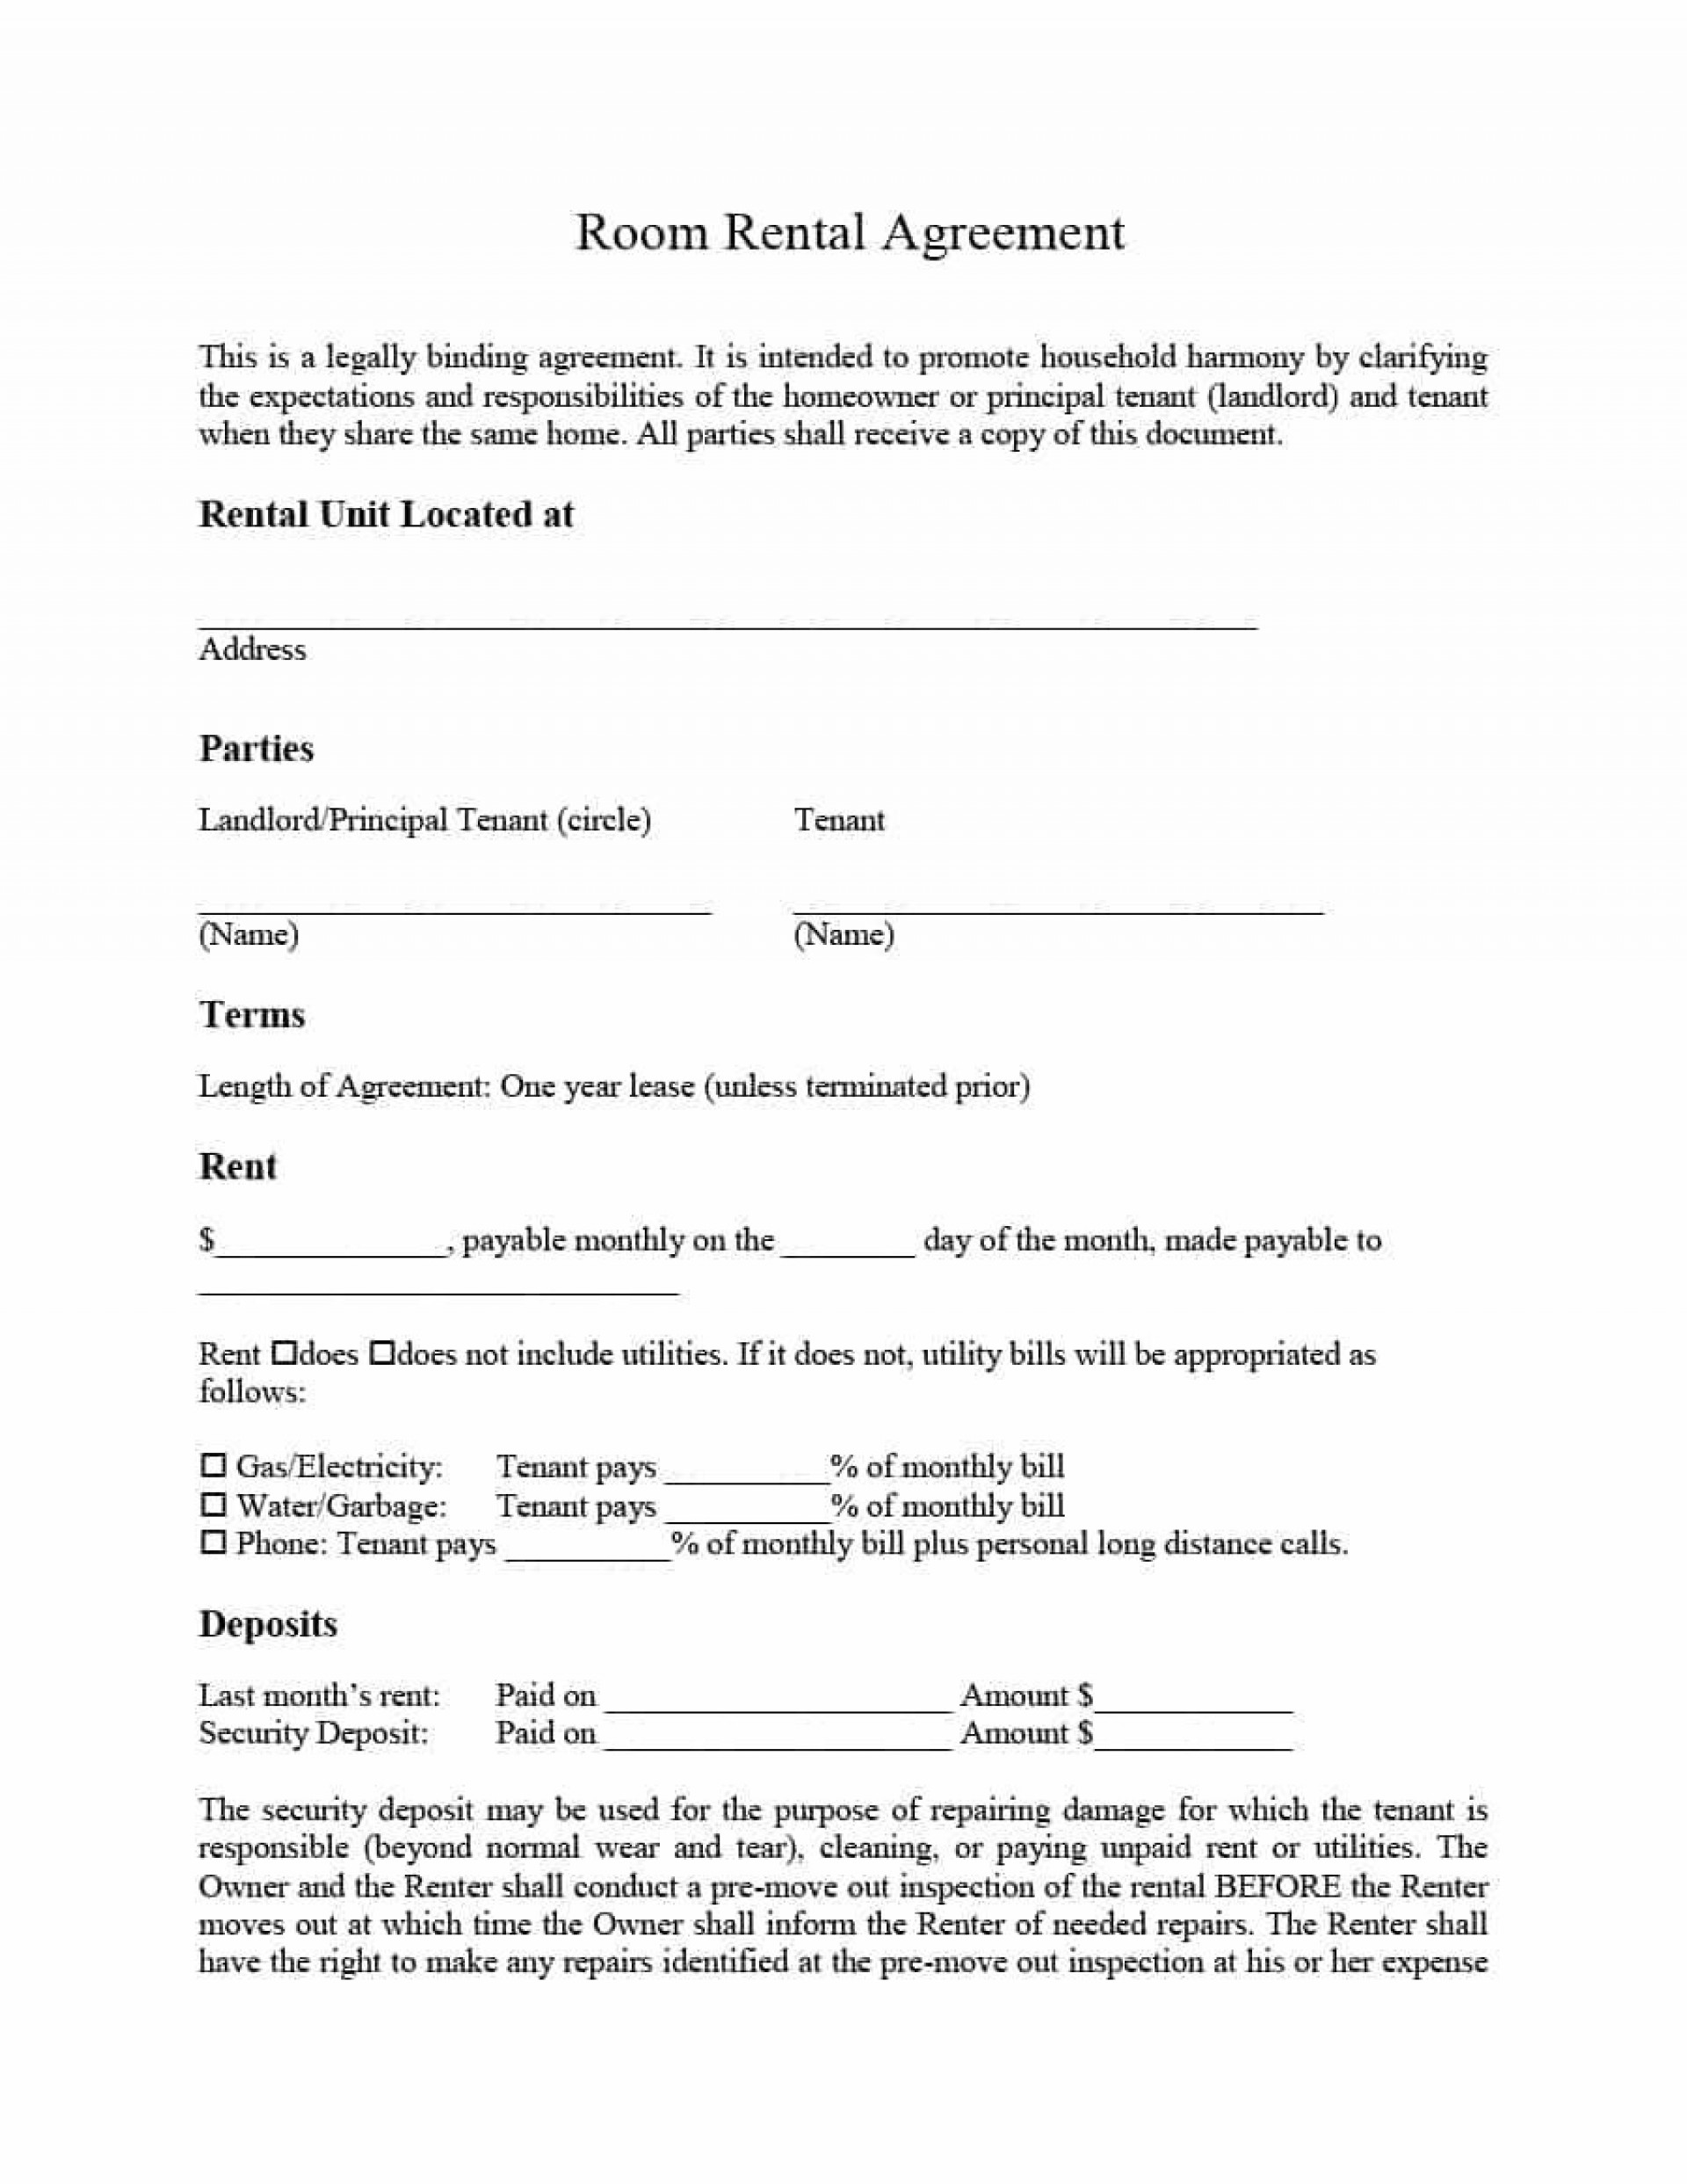 001 Unbelievable Simple Room Rental Agreement Template Highest Quality  Free1920